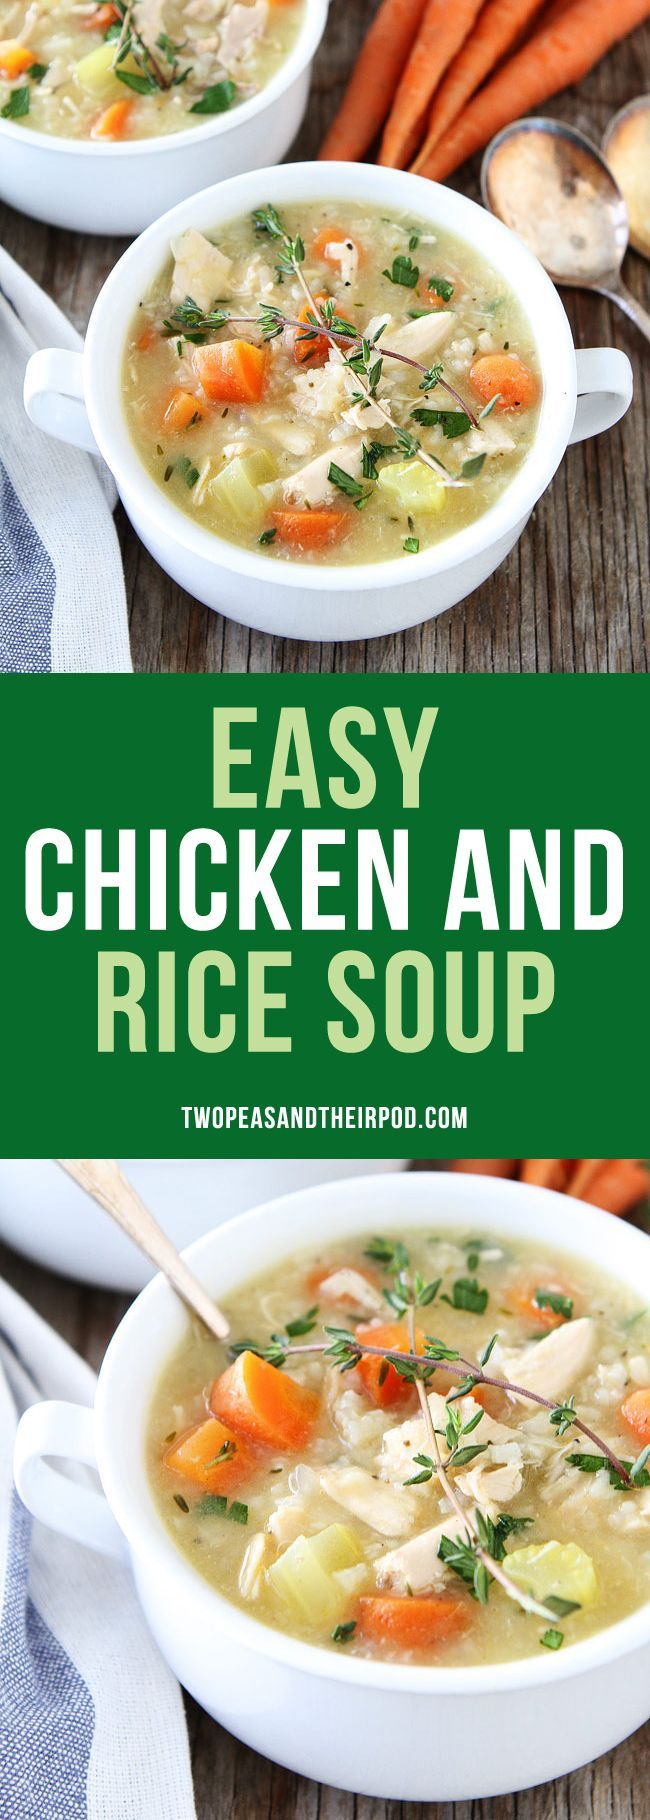 Easy Chicken and Rice Soup is perfect for a cold day and makes a great weeknight meal. It is a family favorite dinner!